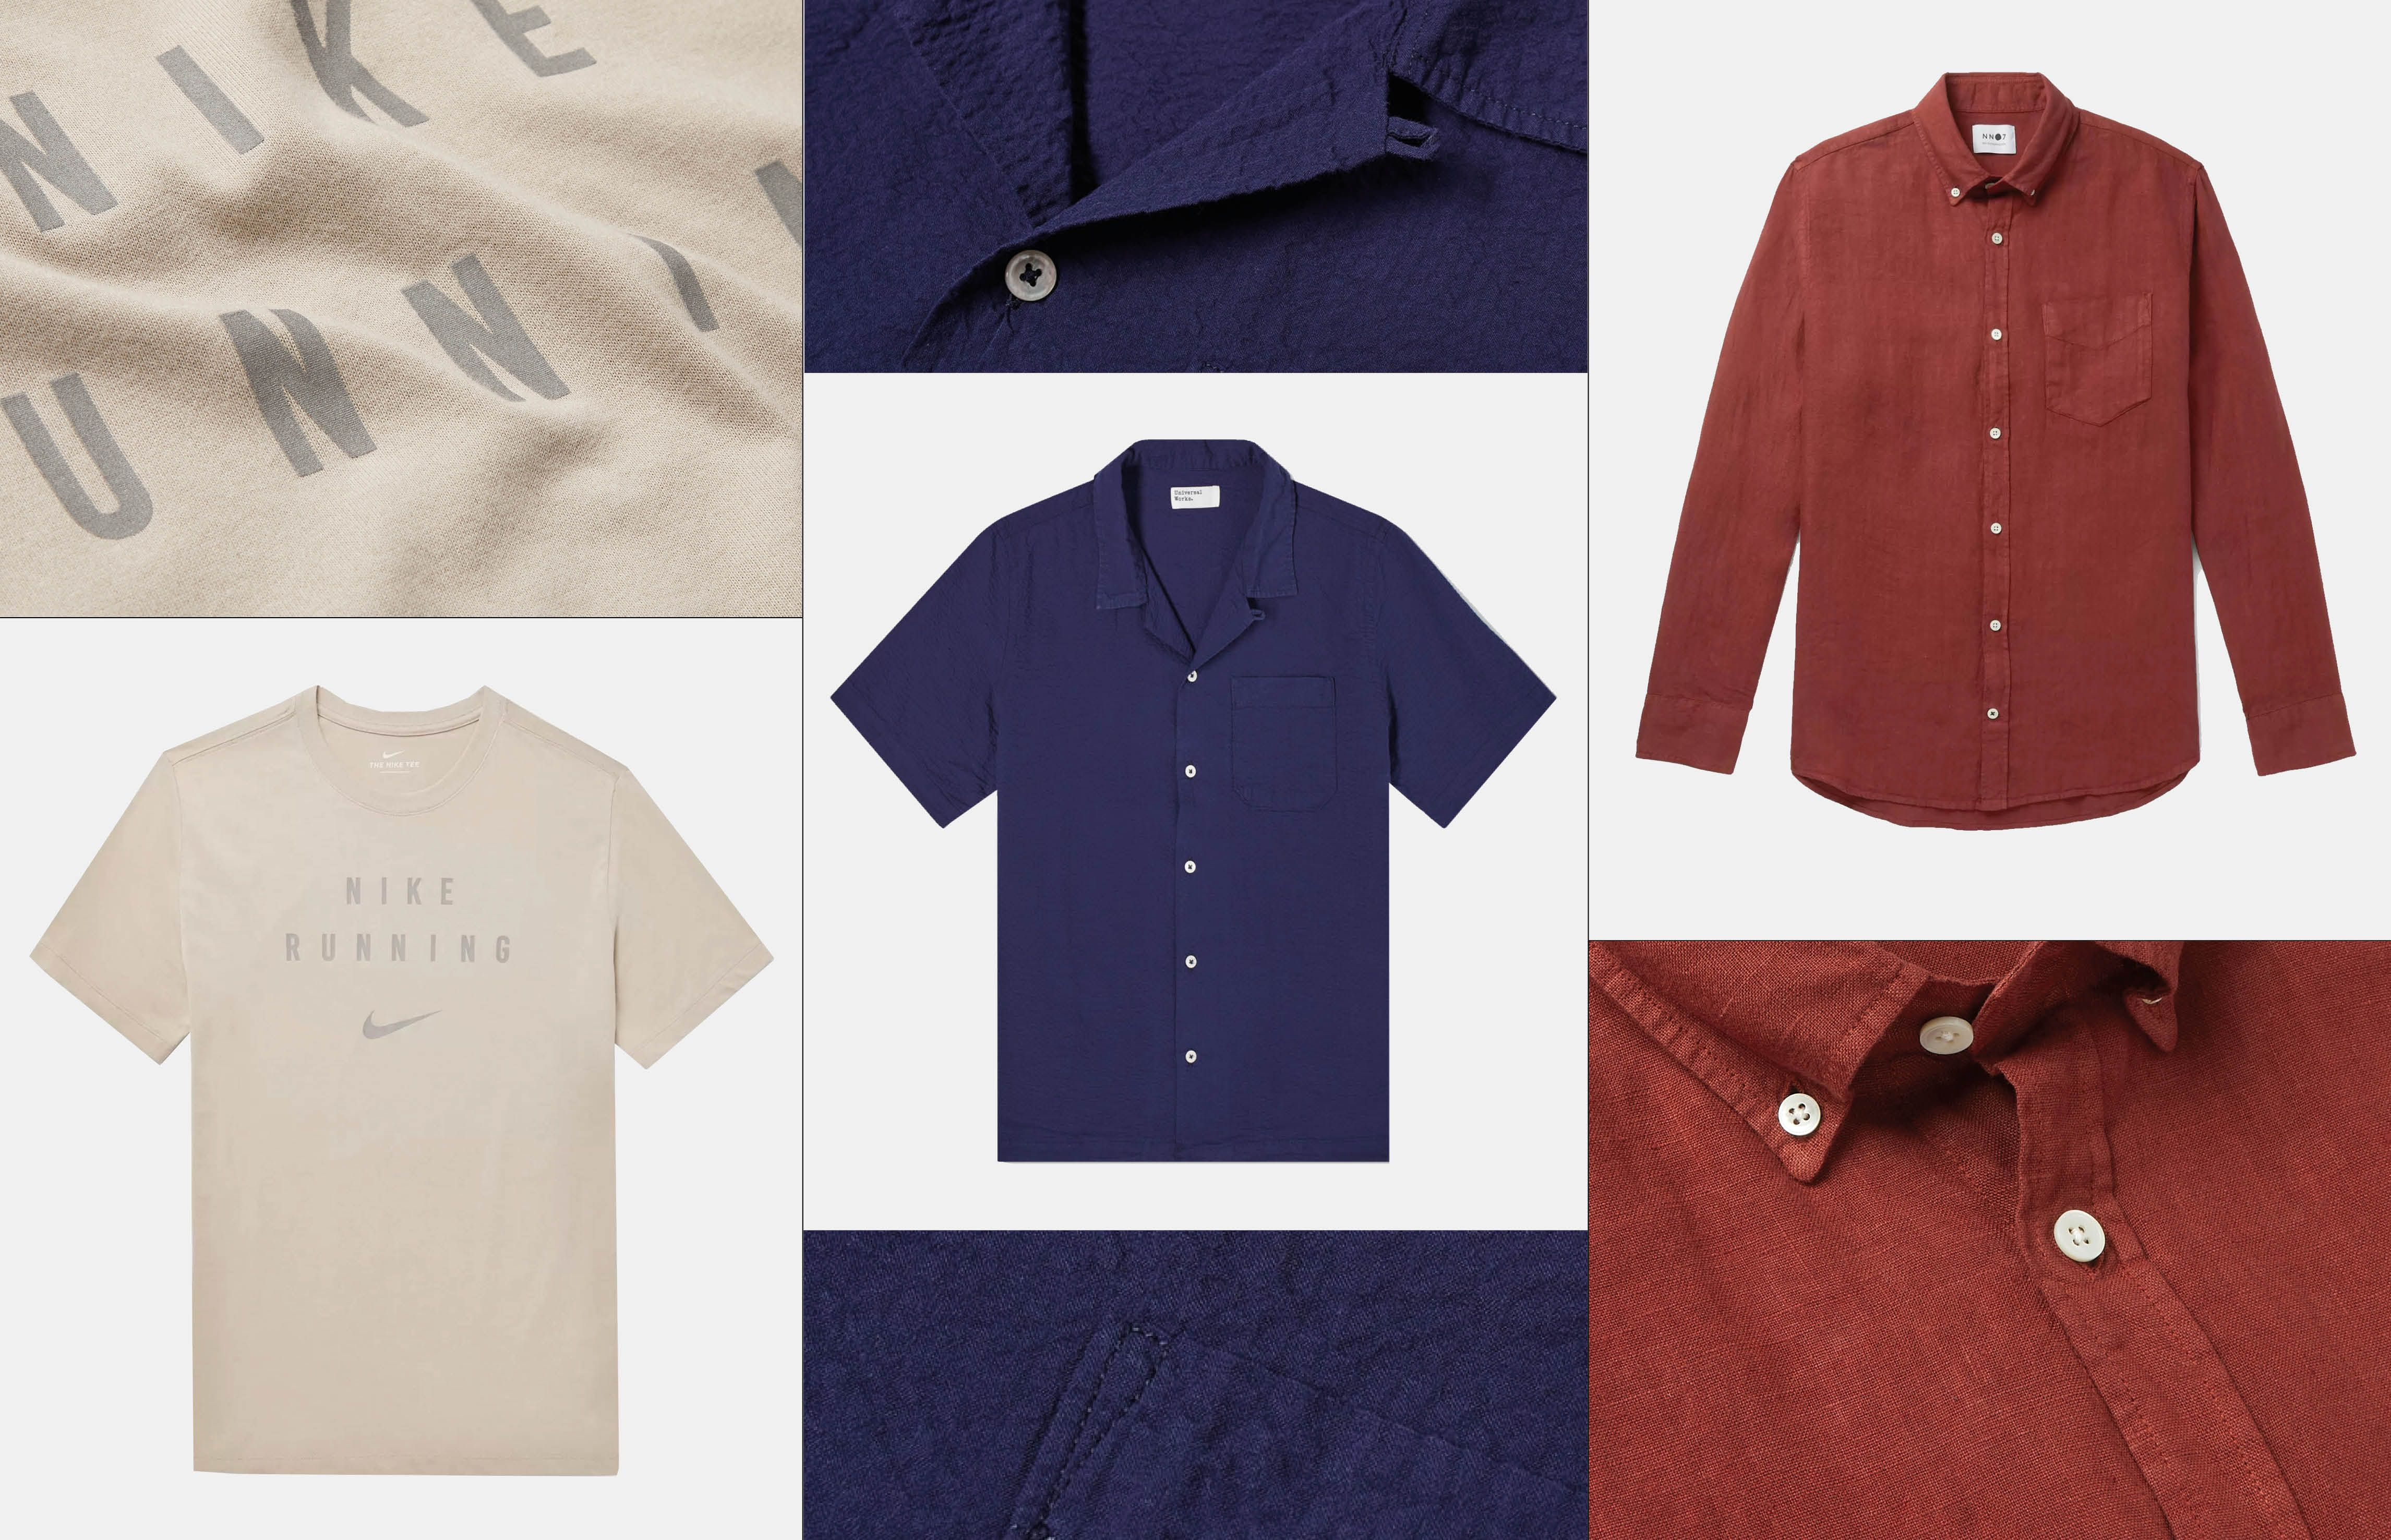 The best warm-weather tops to own in your 40s